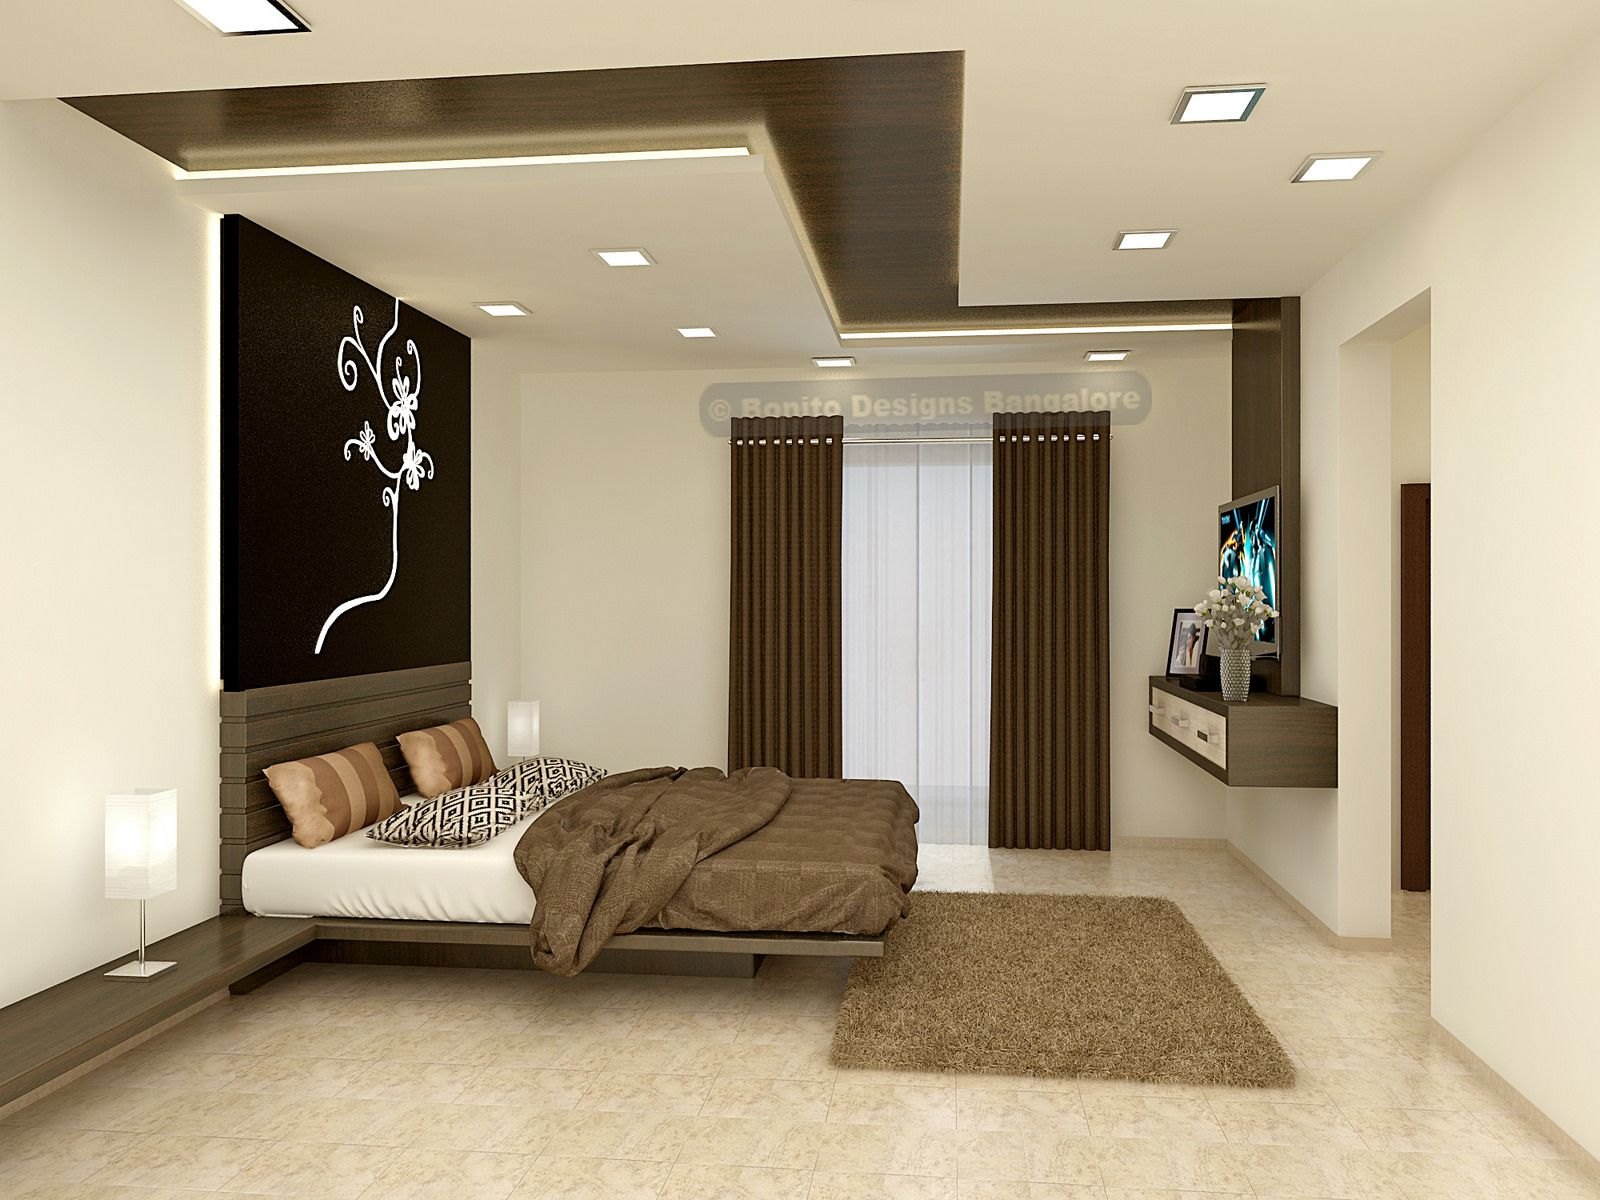 Stunning Master bedroom design with simple and elegant CNC cutting  headboard.